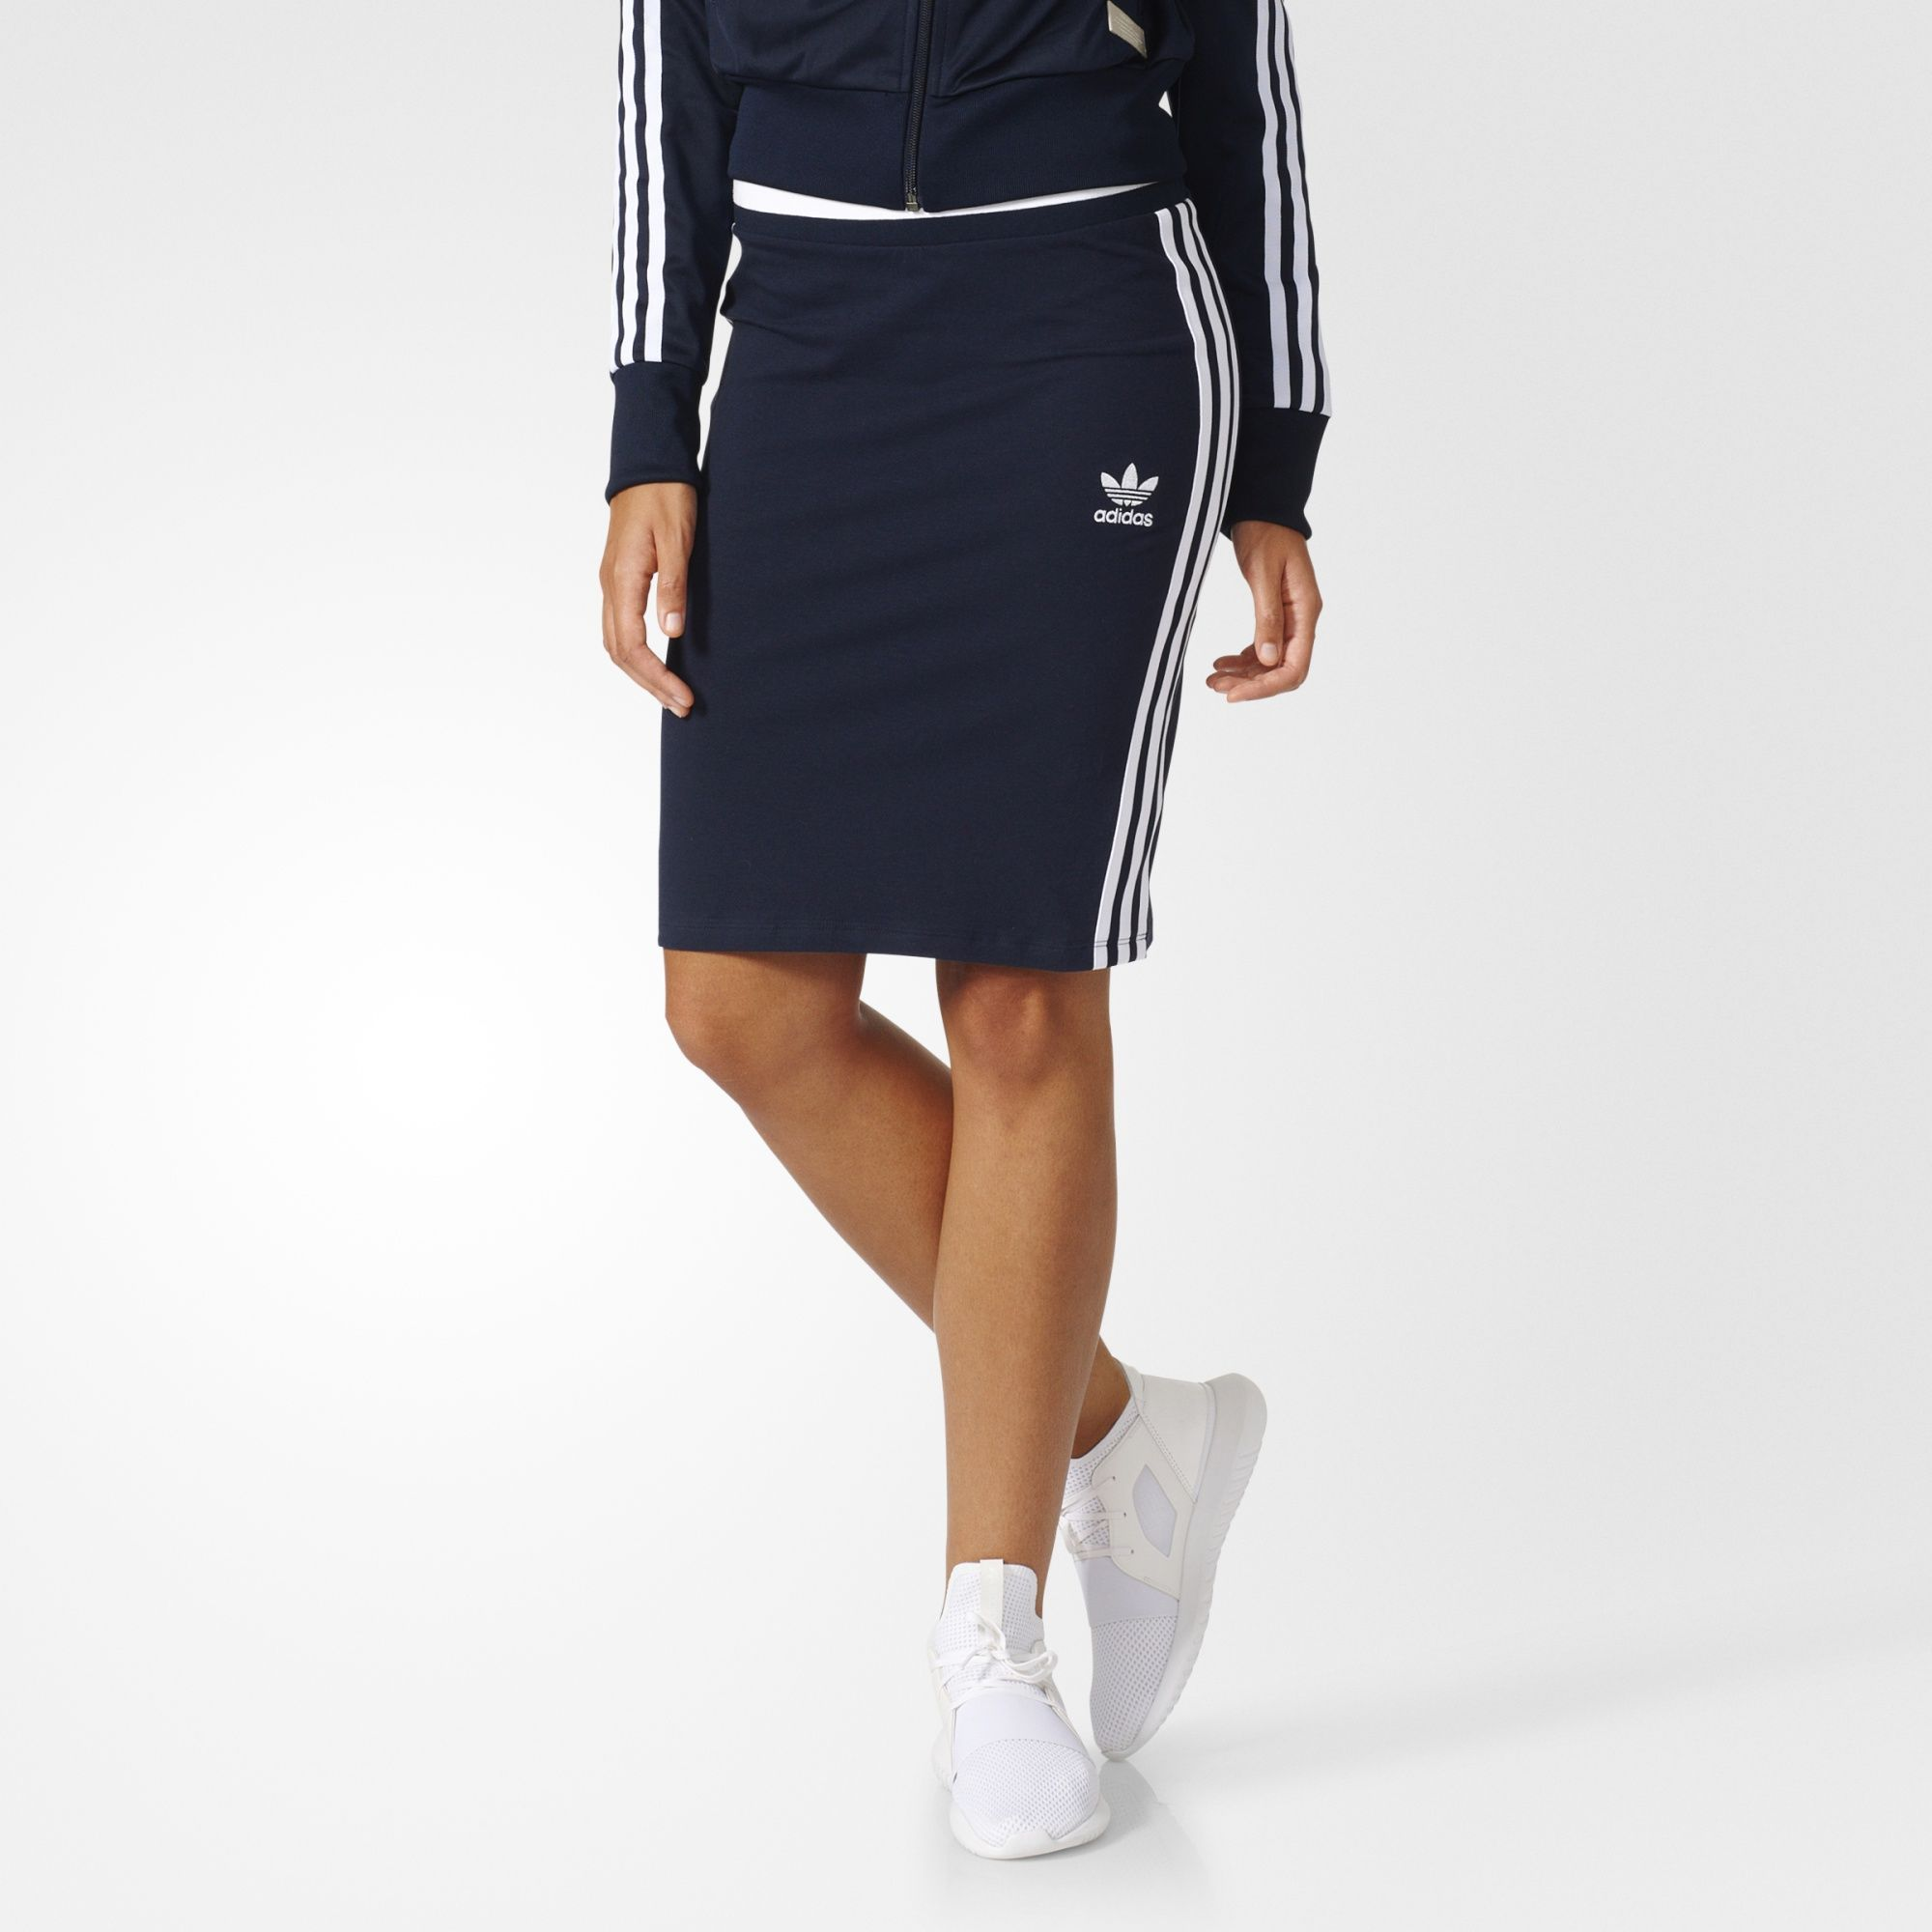 7cdf6394486 adidas - 3-Stripes Midi Skirt | My Style | Skirts, Fitted skirt ...